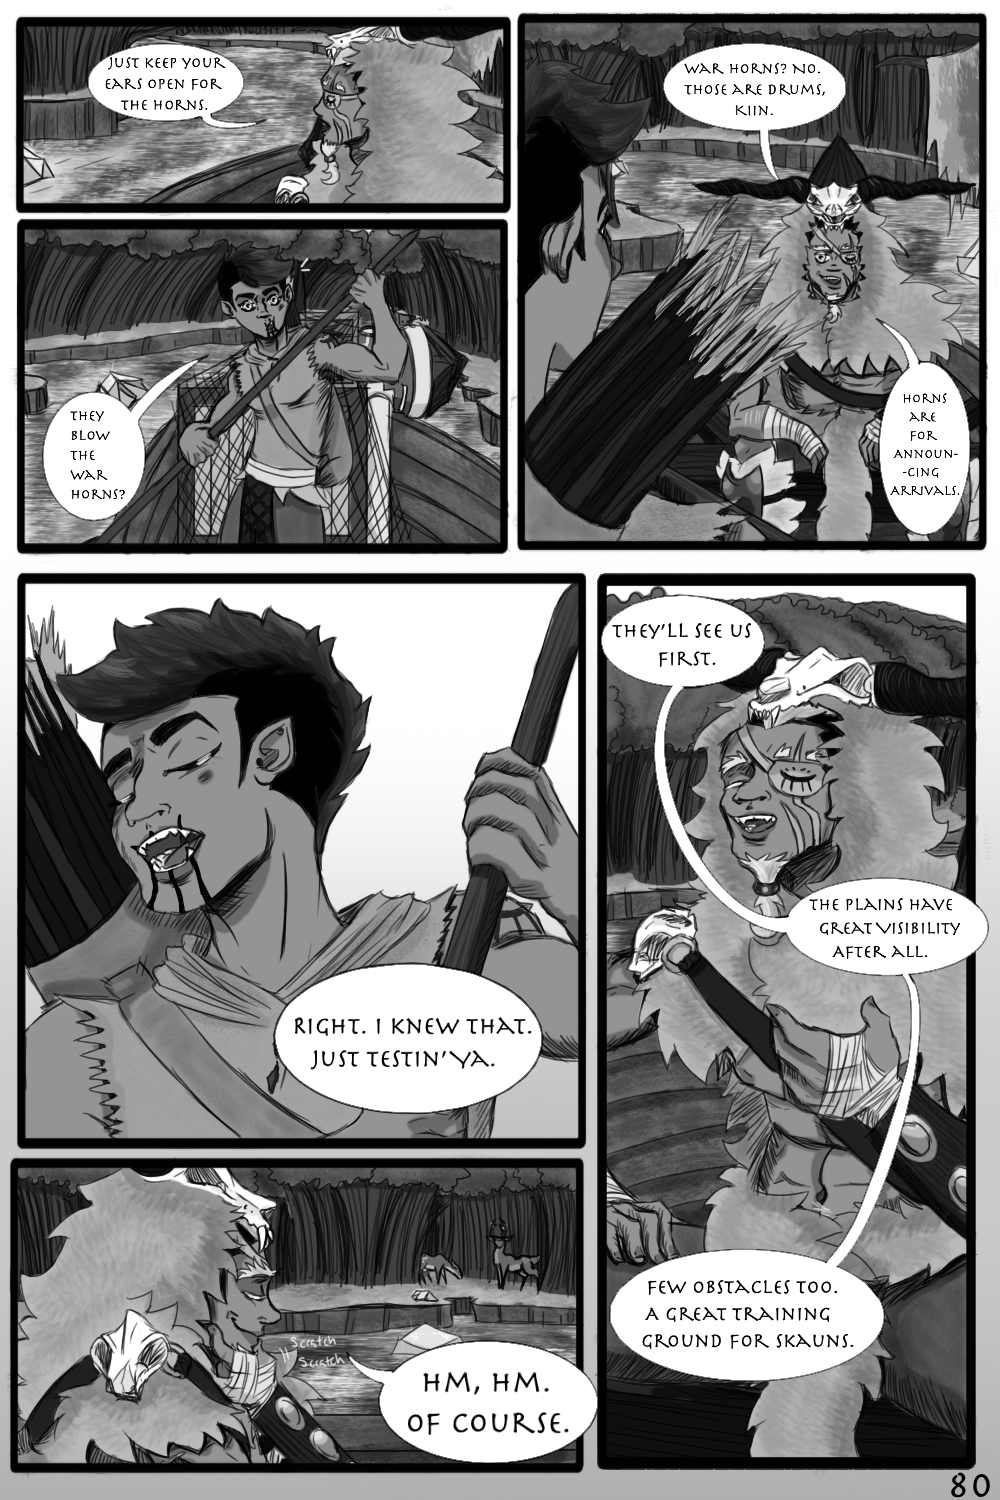 Bad Omen Page 80